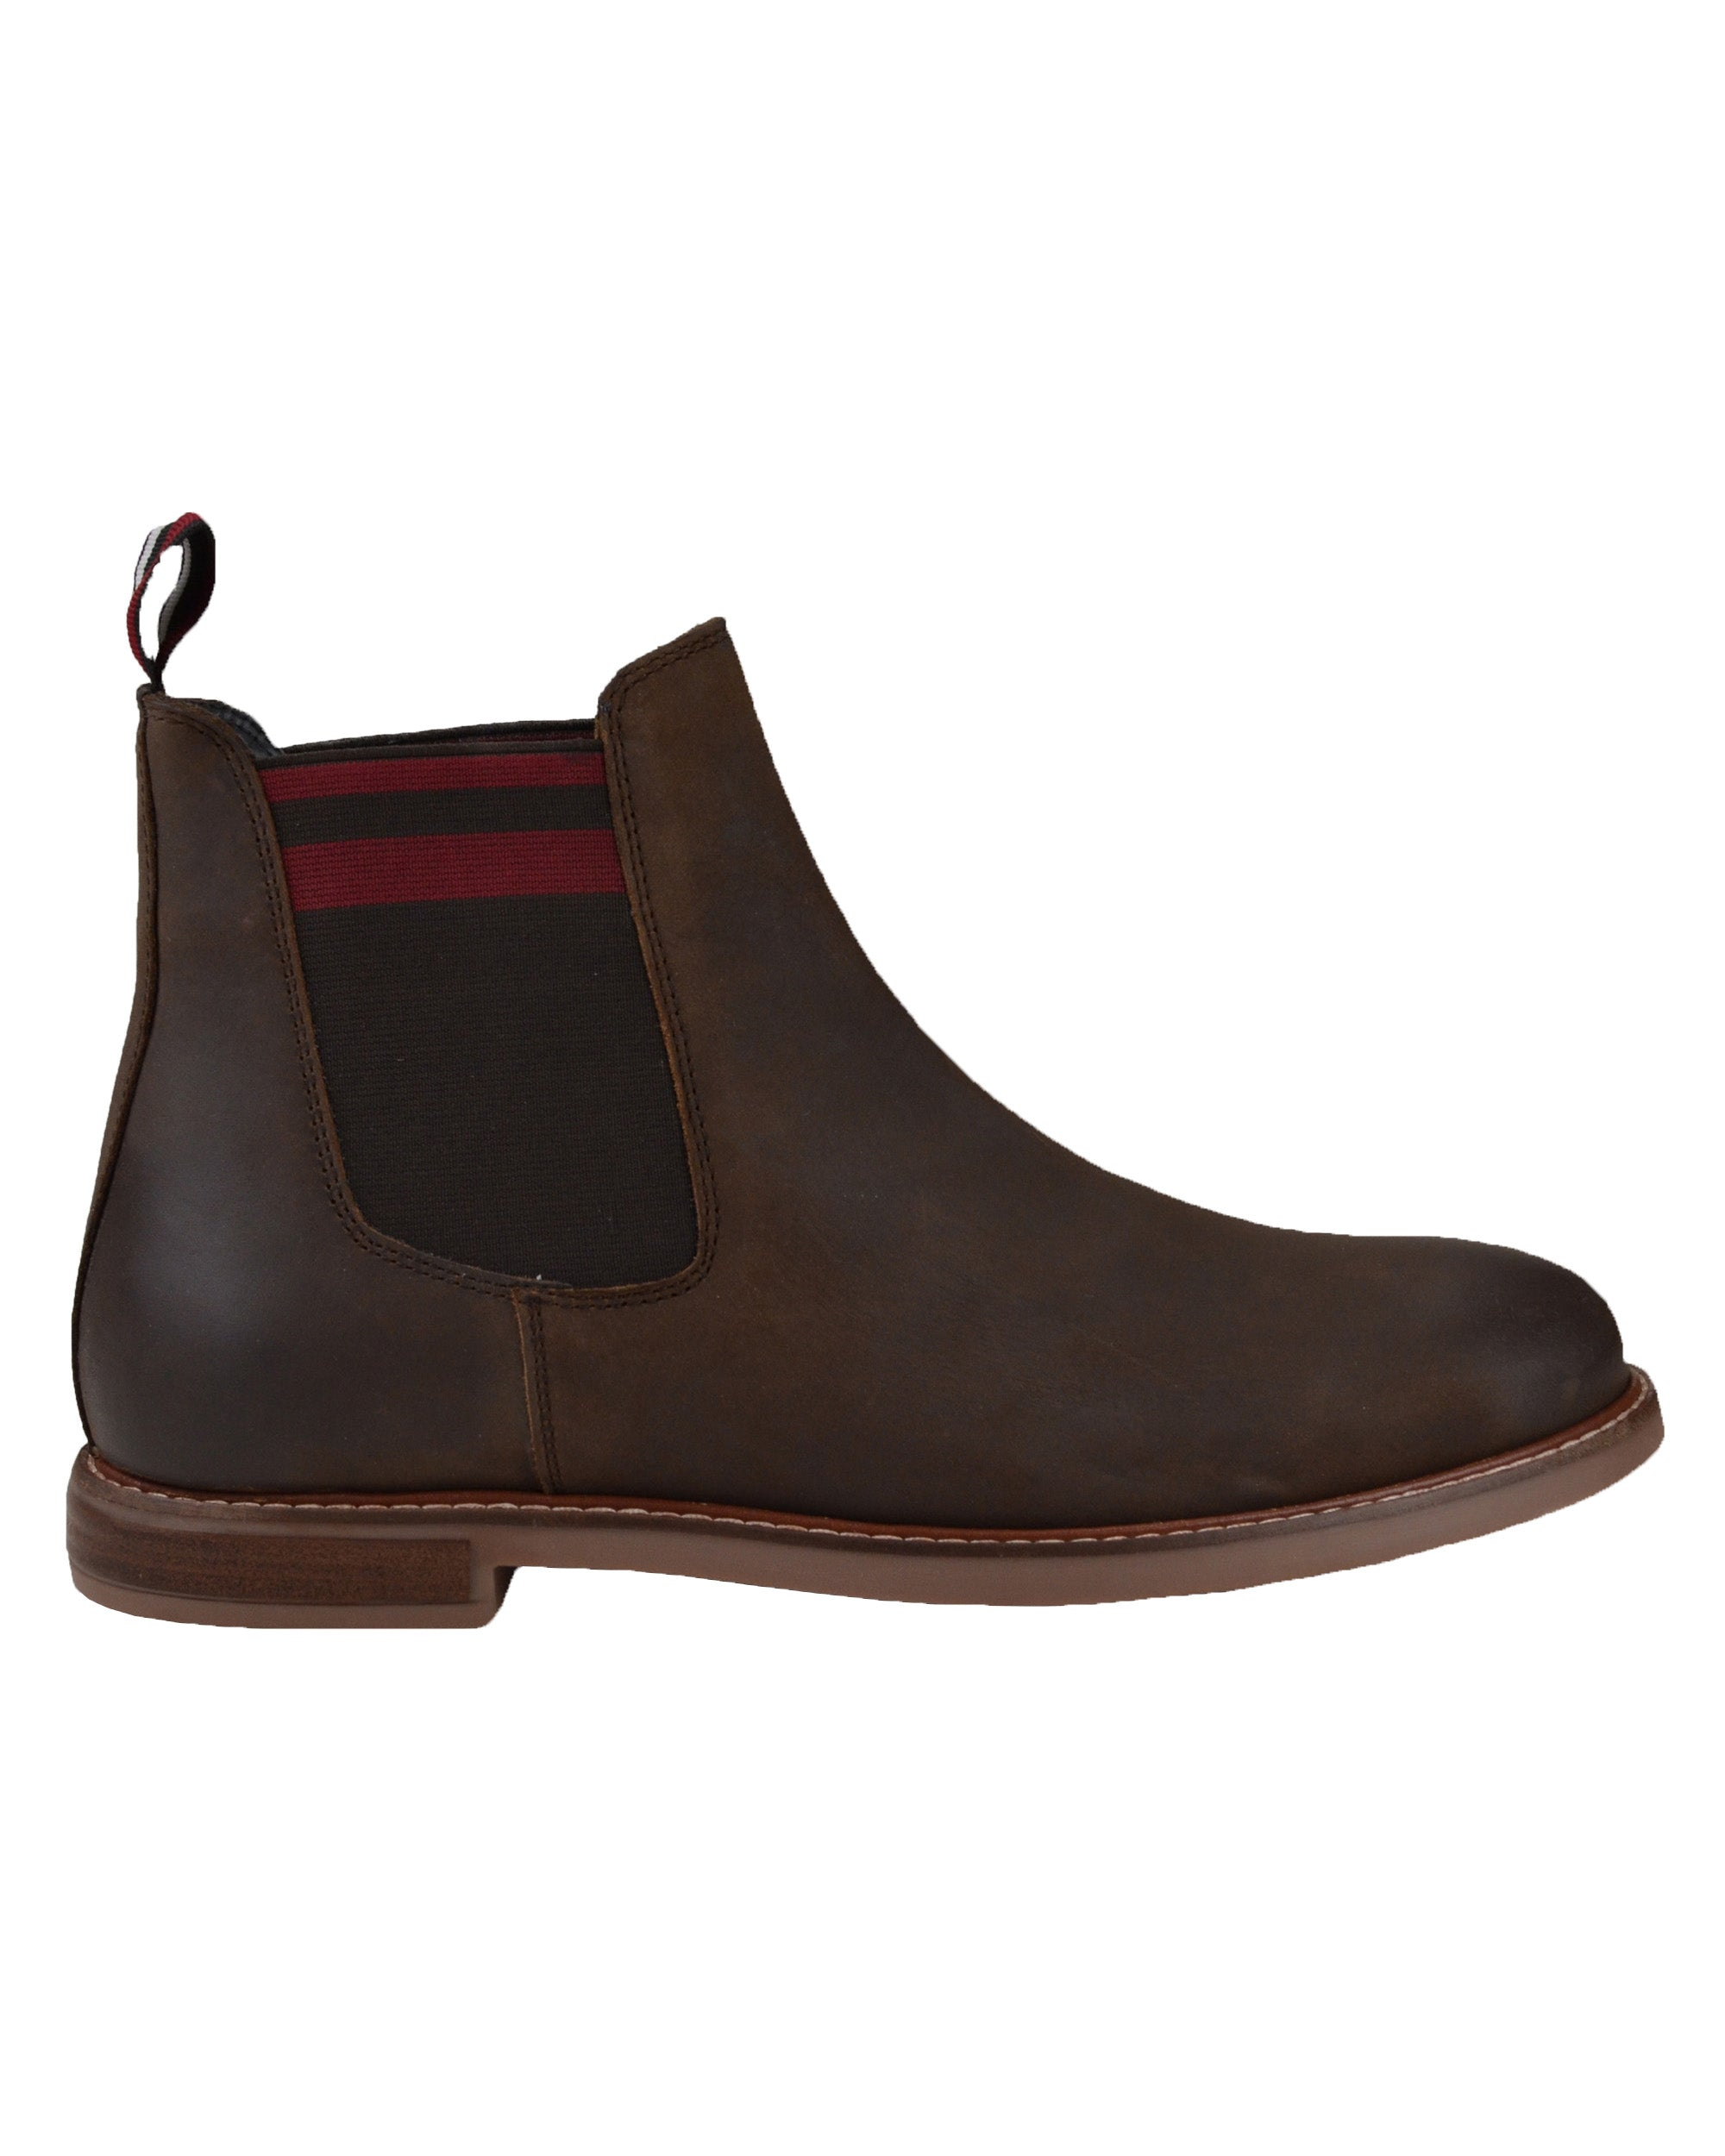 Brent Leather Chelsea Boot - Brown